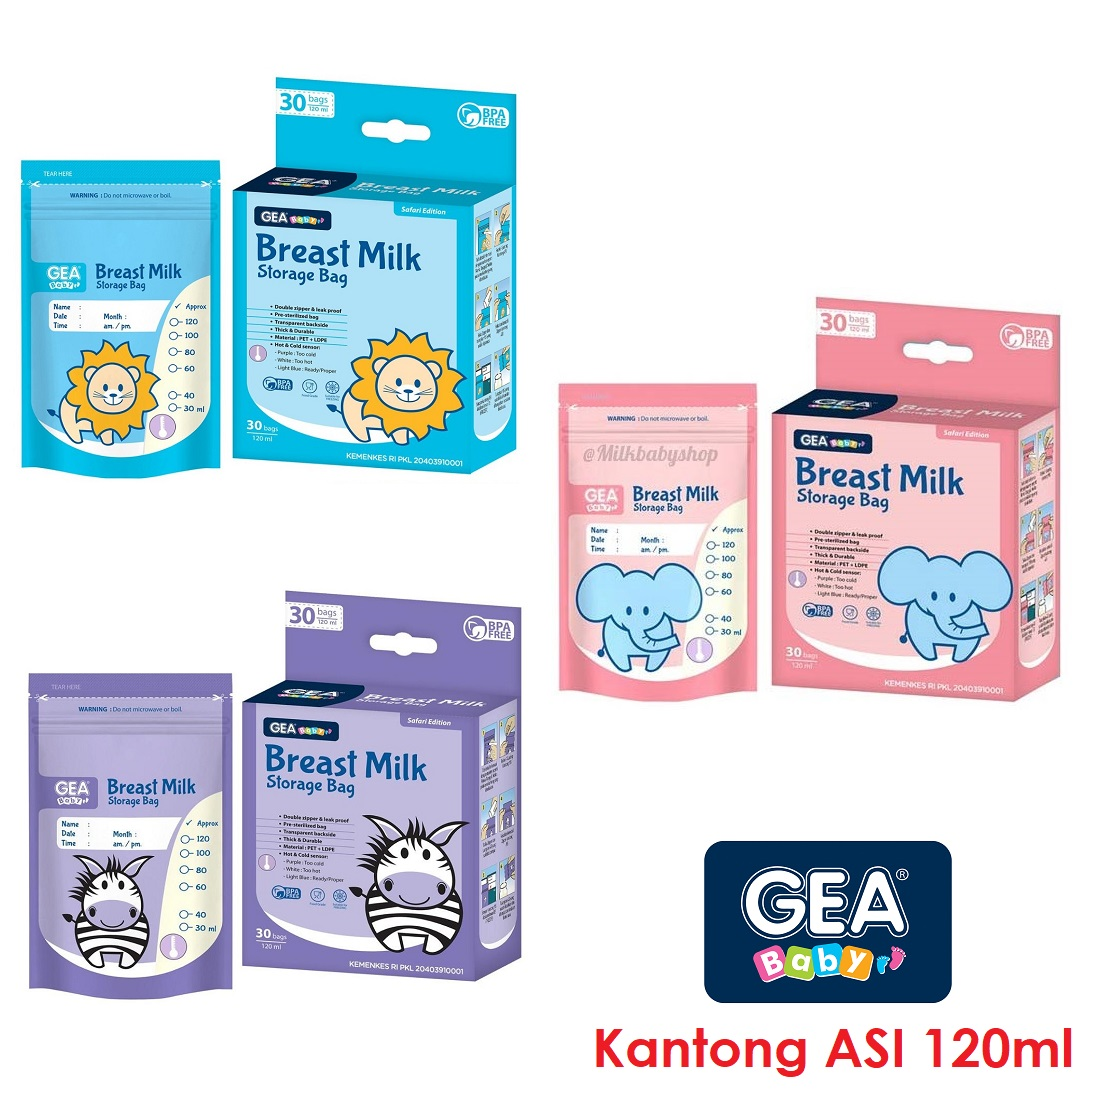 GEA 120ml Kantong ASI Breastmilk Bag Baby